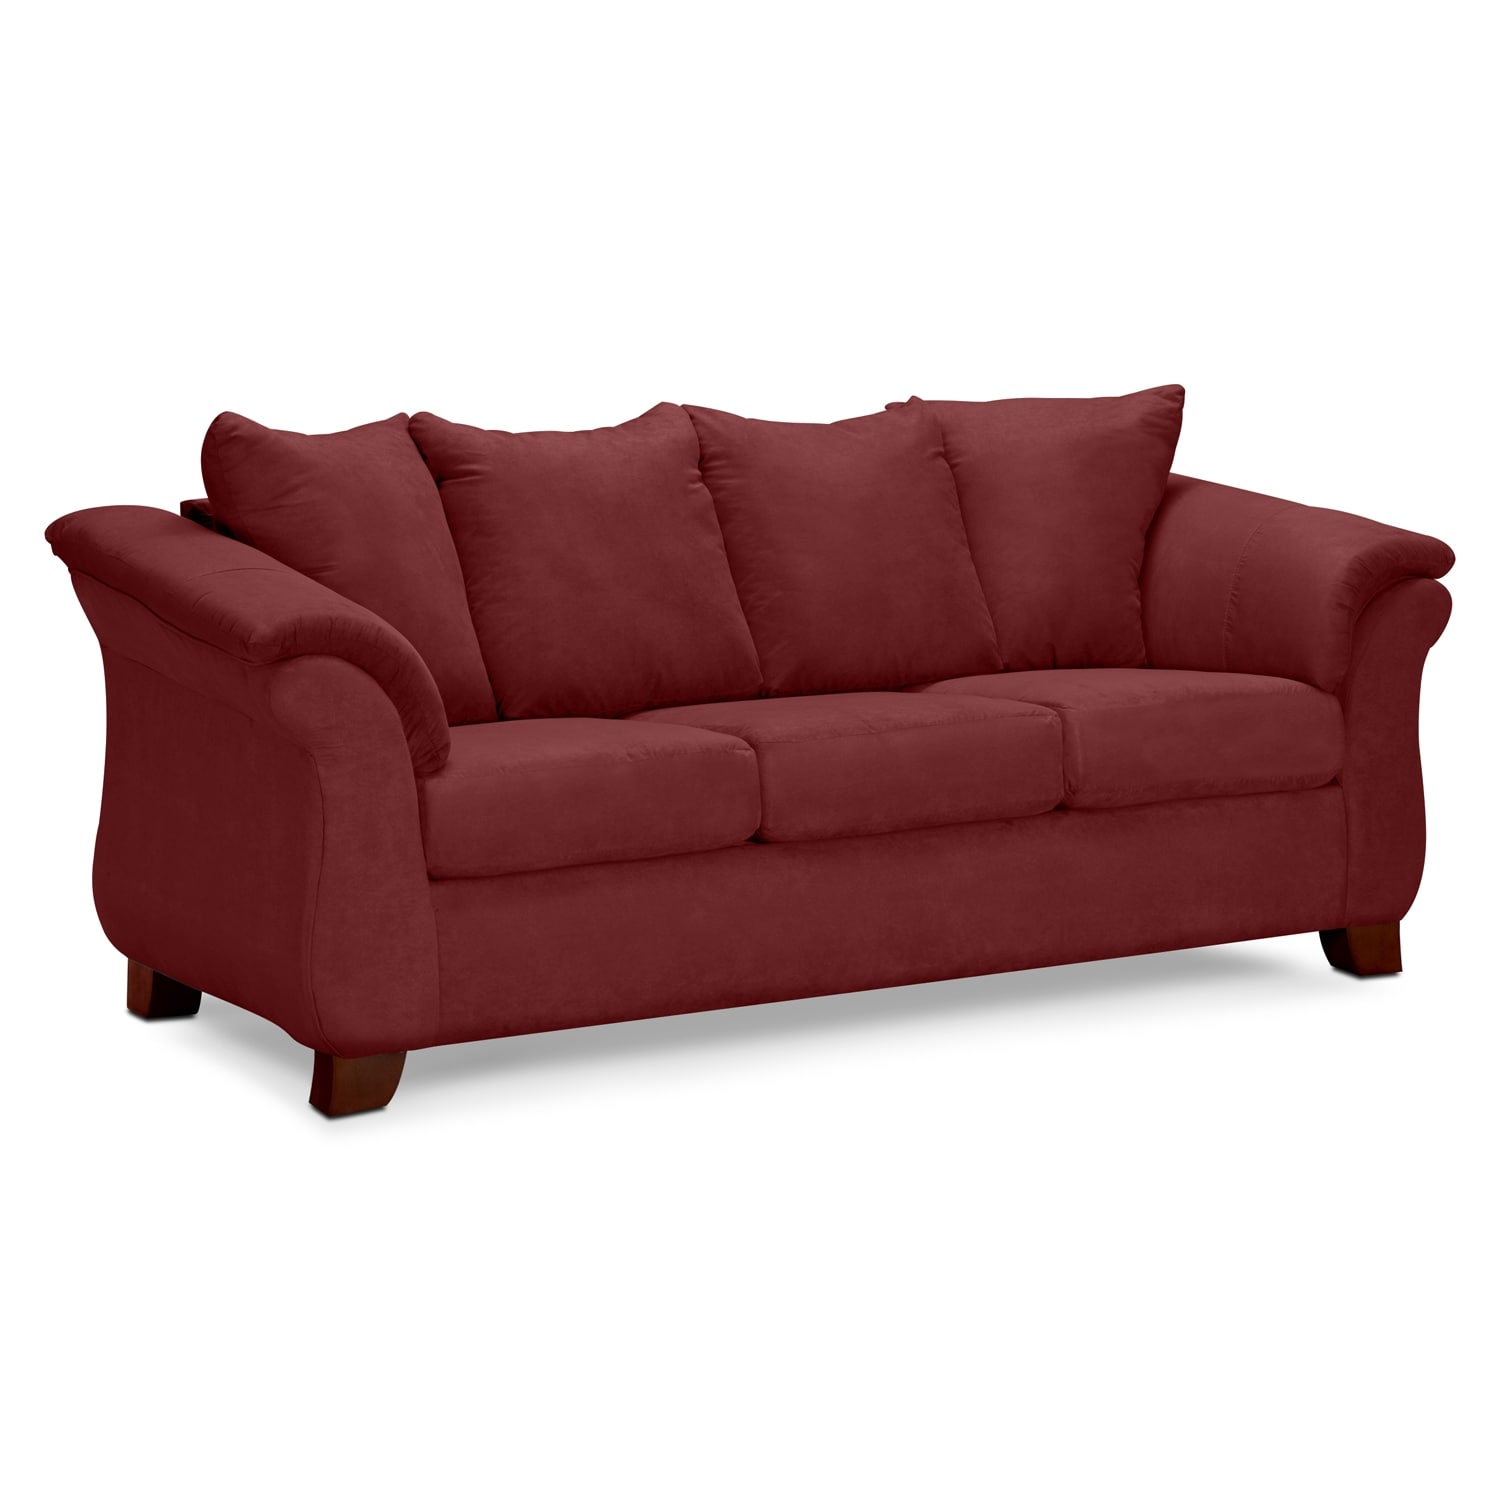 Adrian sofa red value city furniture Red sofas and loveseats